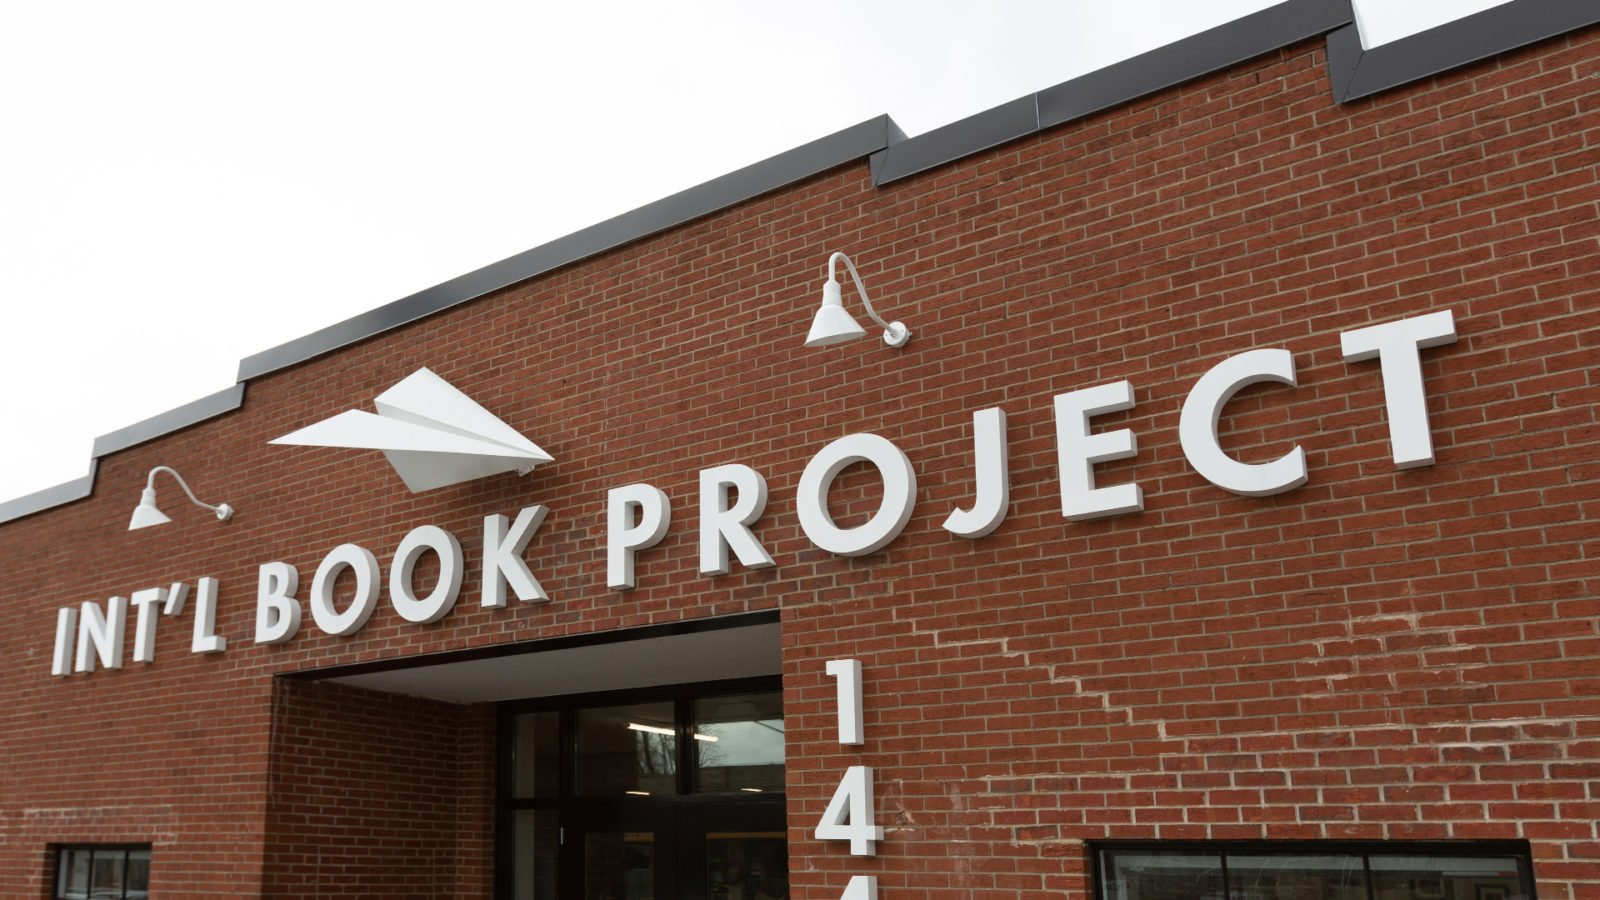 Checking In On International Book Project